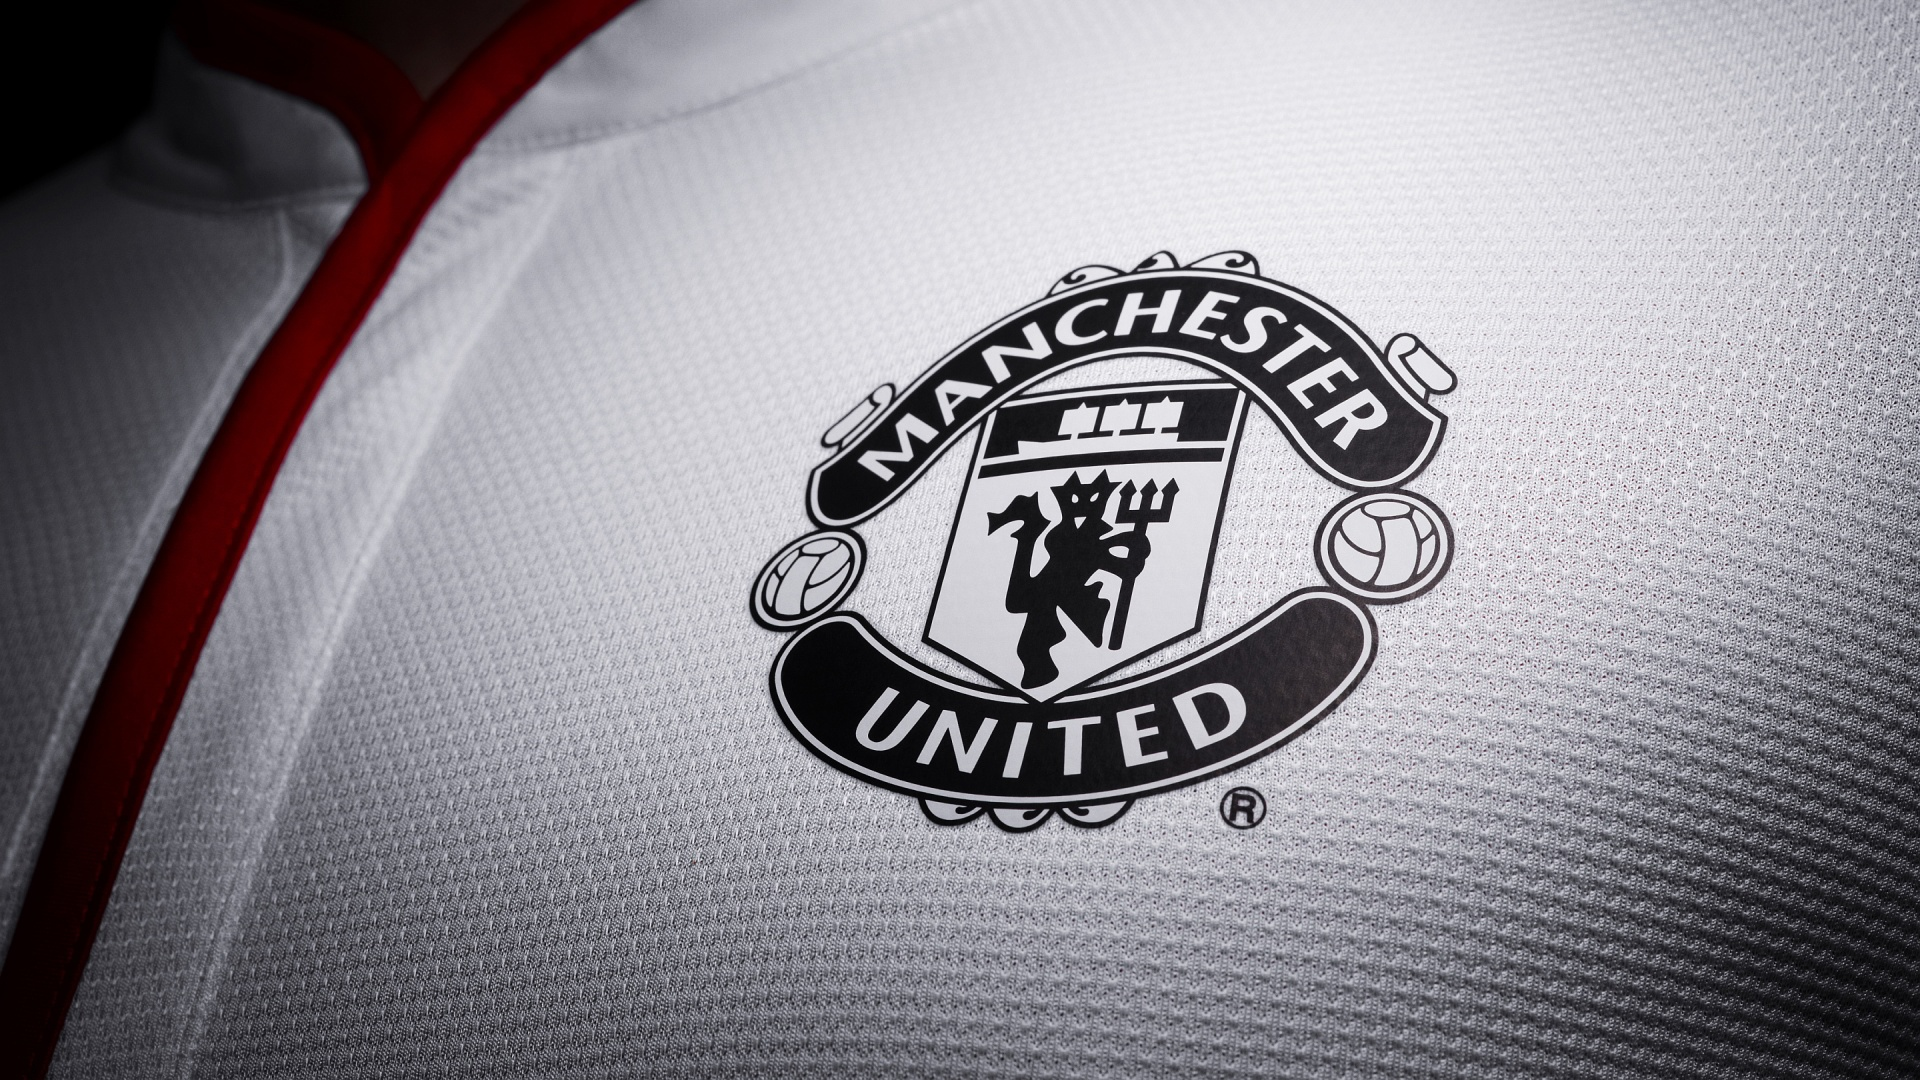 Manchester United Away Shirt Wallpaper